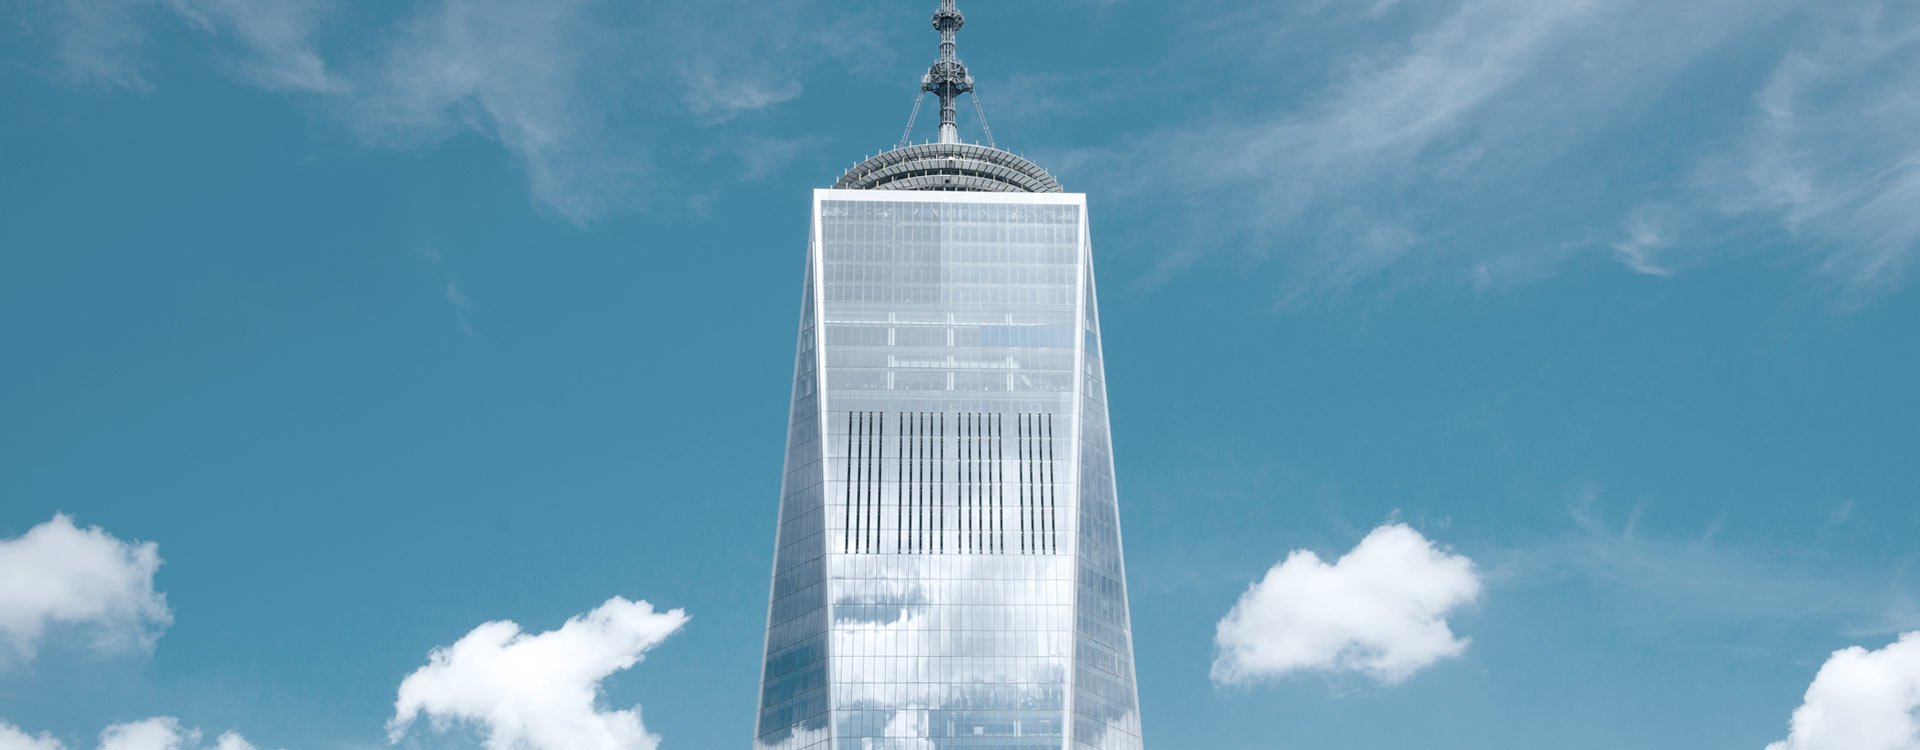 bnr-One-World-Trade-Center-High-Rise